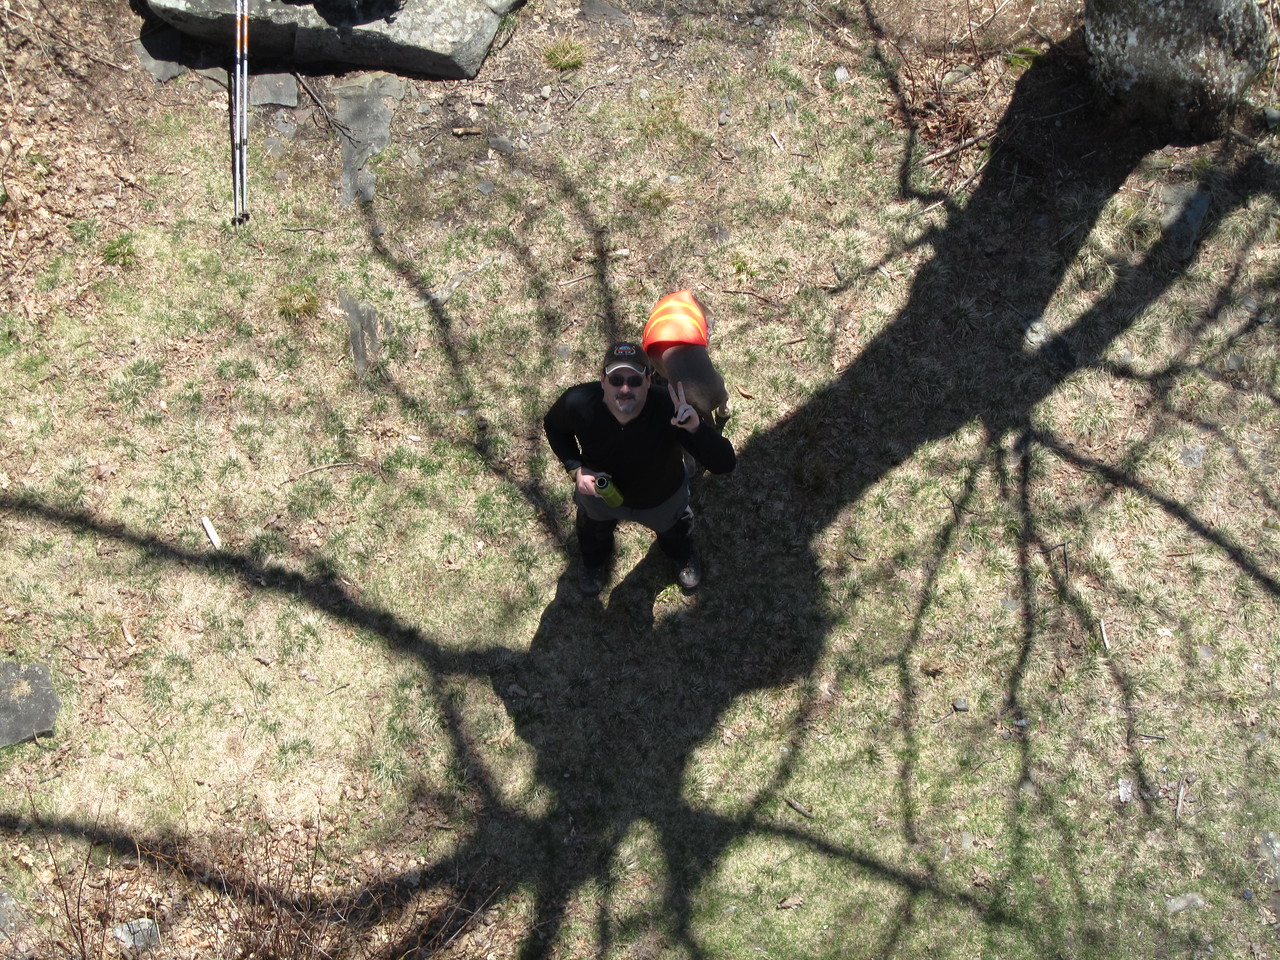 Rob Wallenda climbed the stairs to the fire tower. The cab was locked but he got some good pictures.